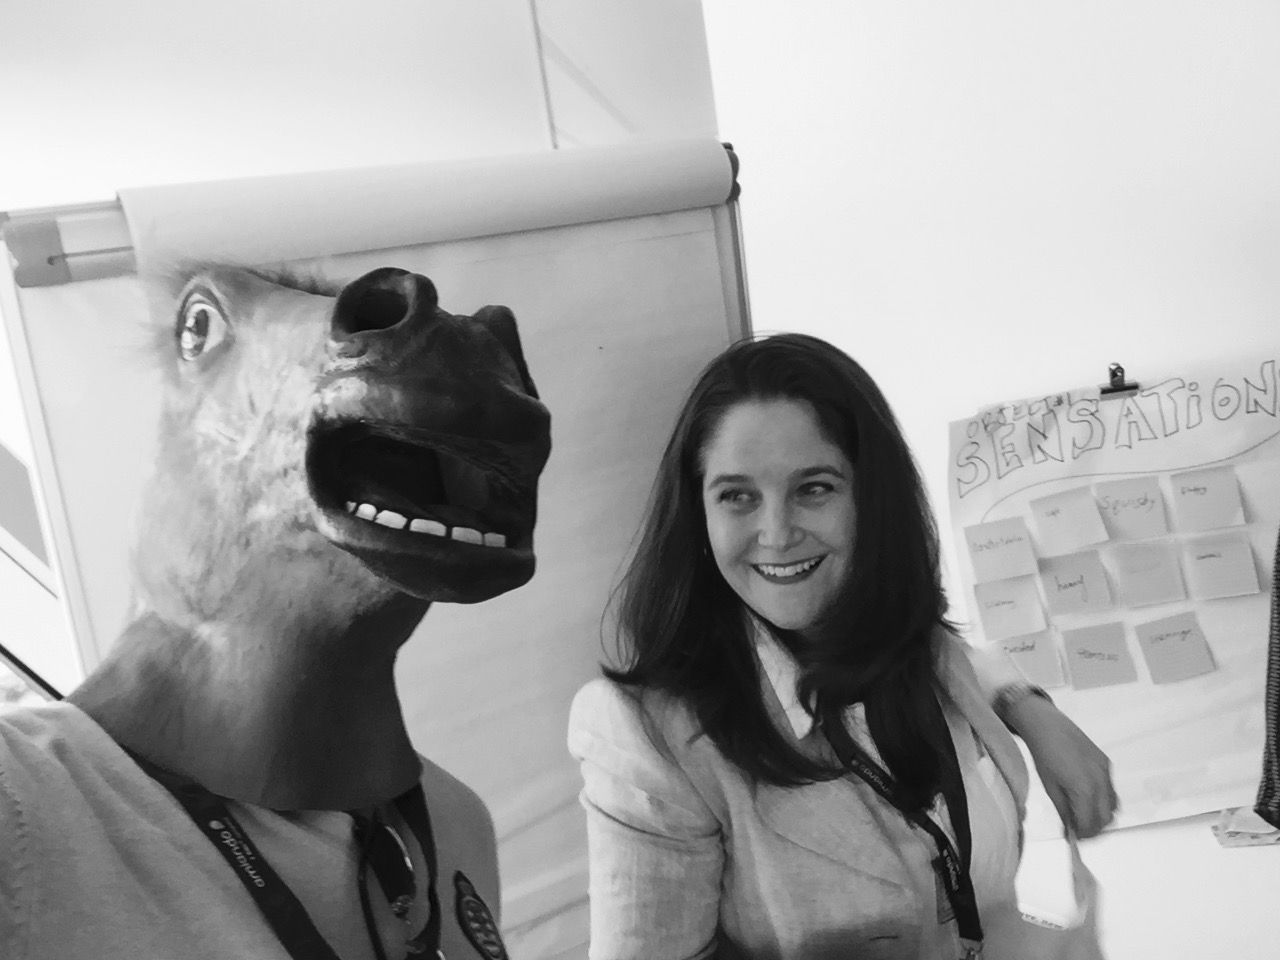 Horsing around during an IdeaKeg interaction at Intraopreneurship Conference 5th Edition, London.